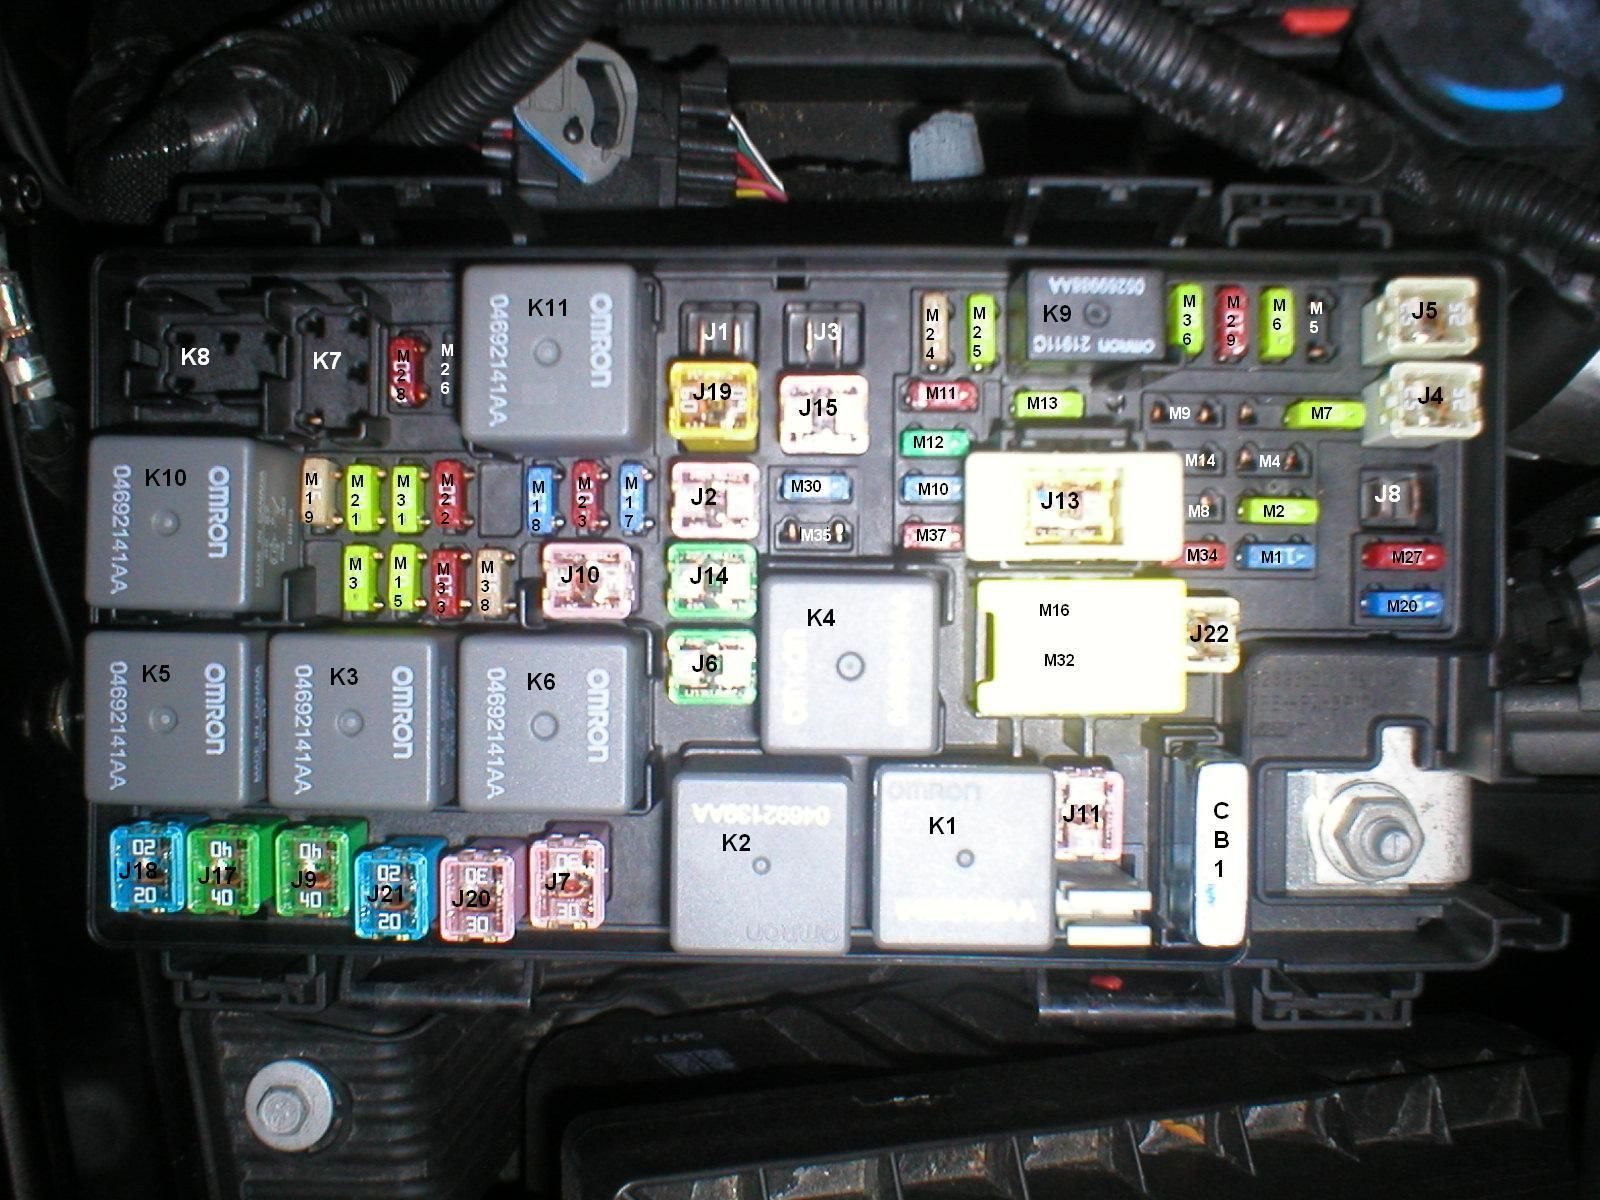 2007 jeep fuse box wiring diagram 2000 jeep cherokee fuse wiring diagram 2007 jeep fuse box [ 1600 x 1200 Pixel ]